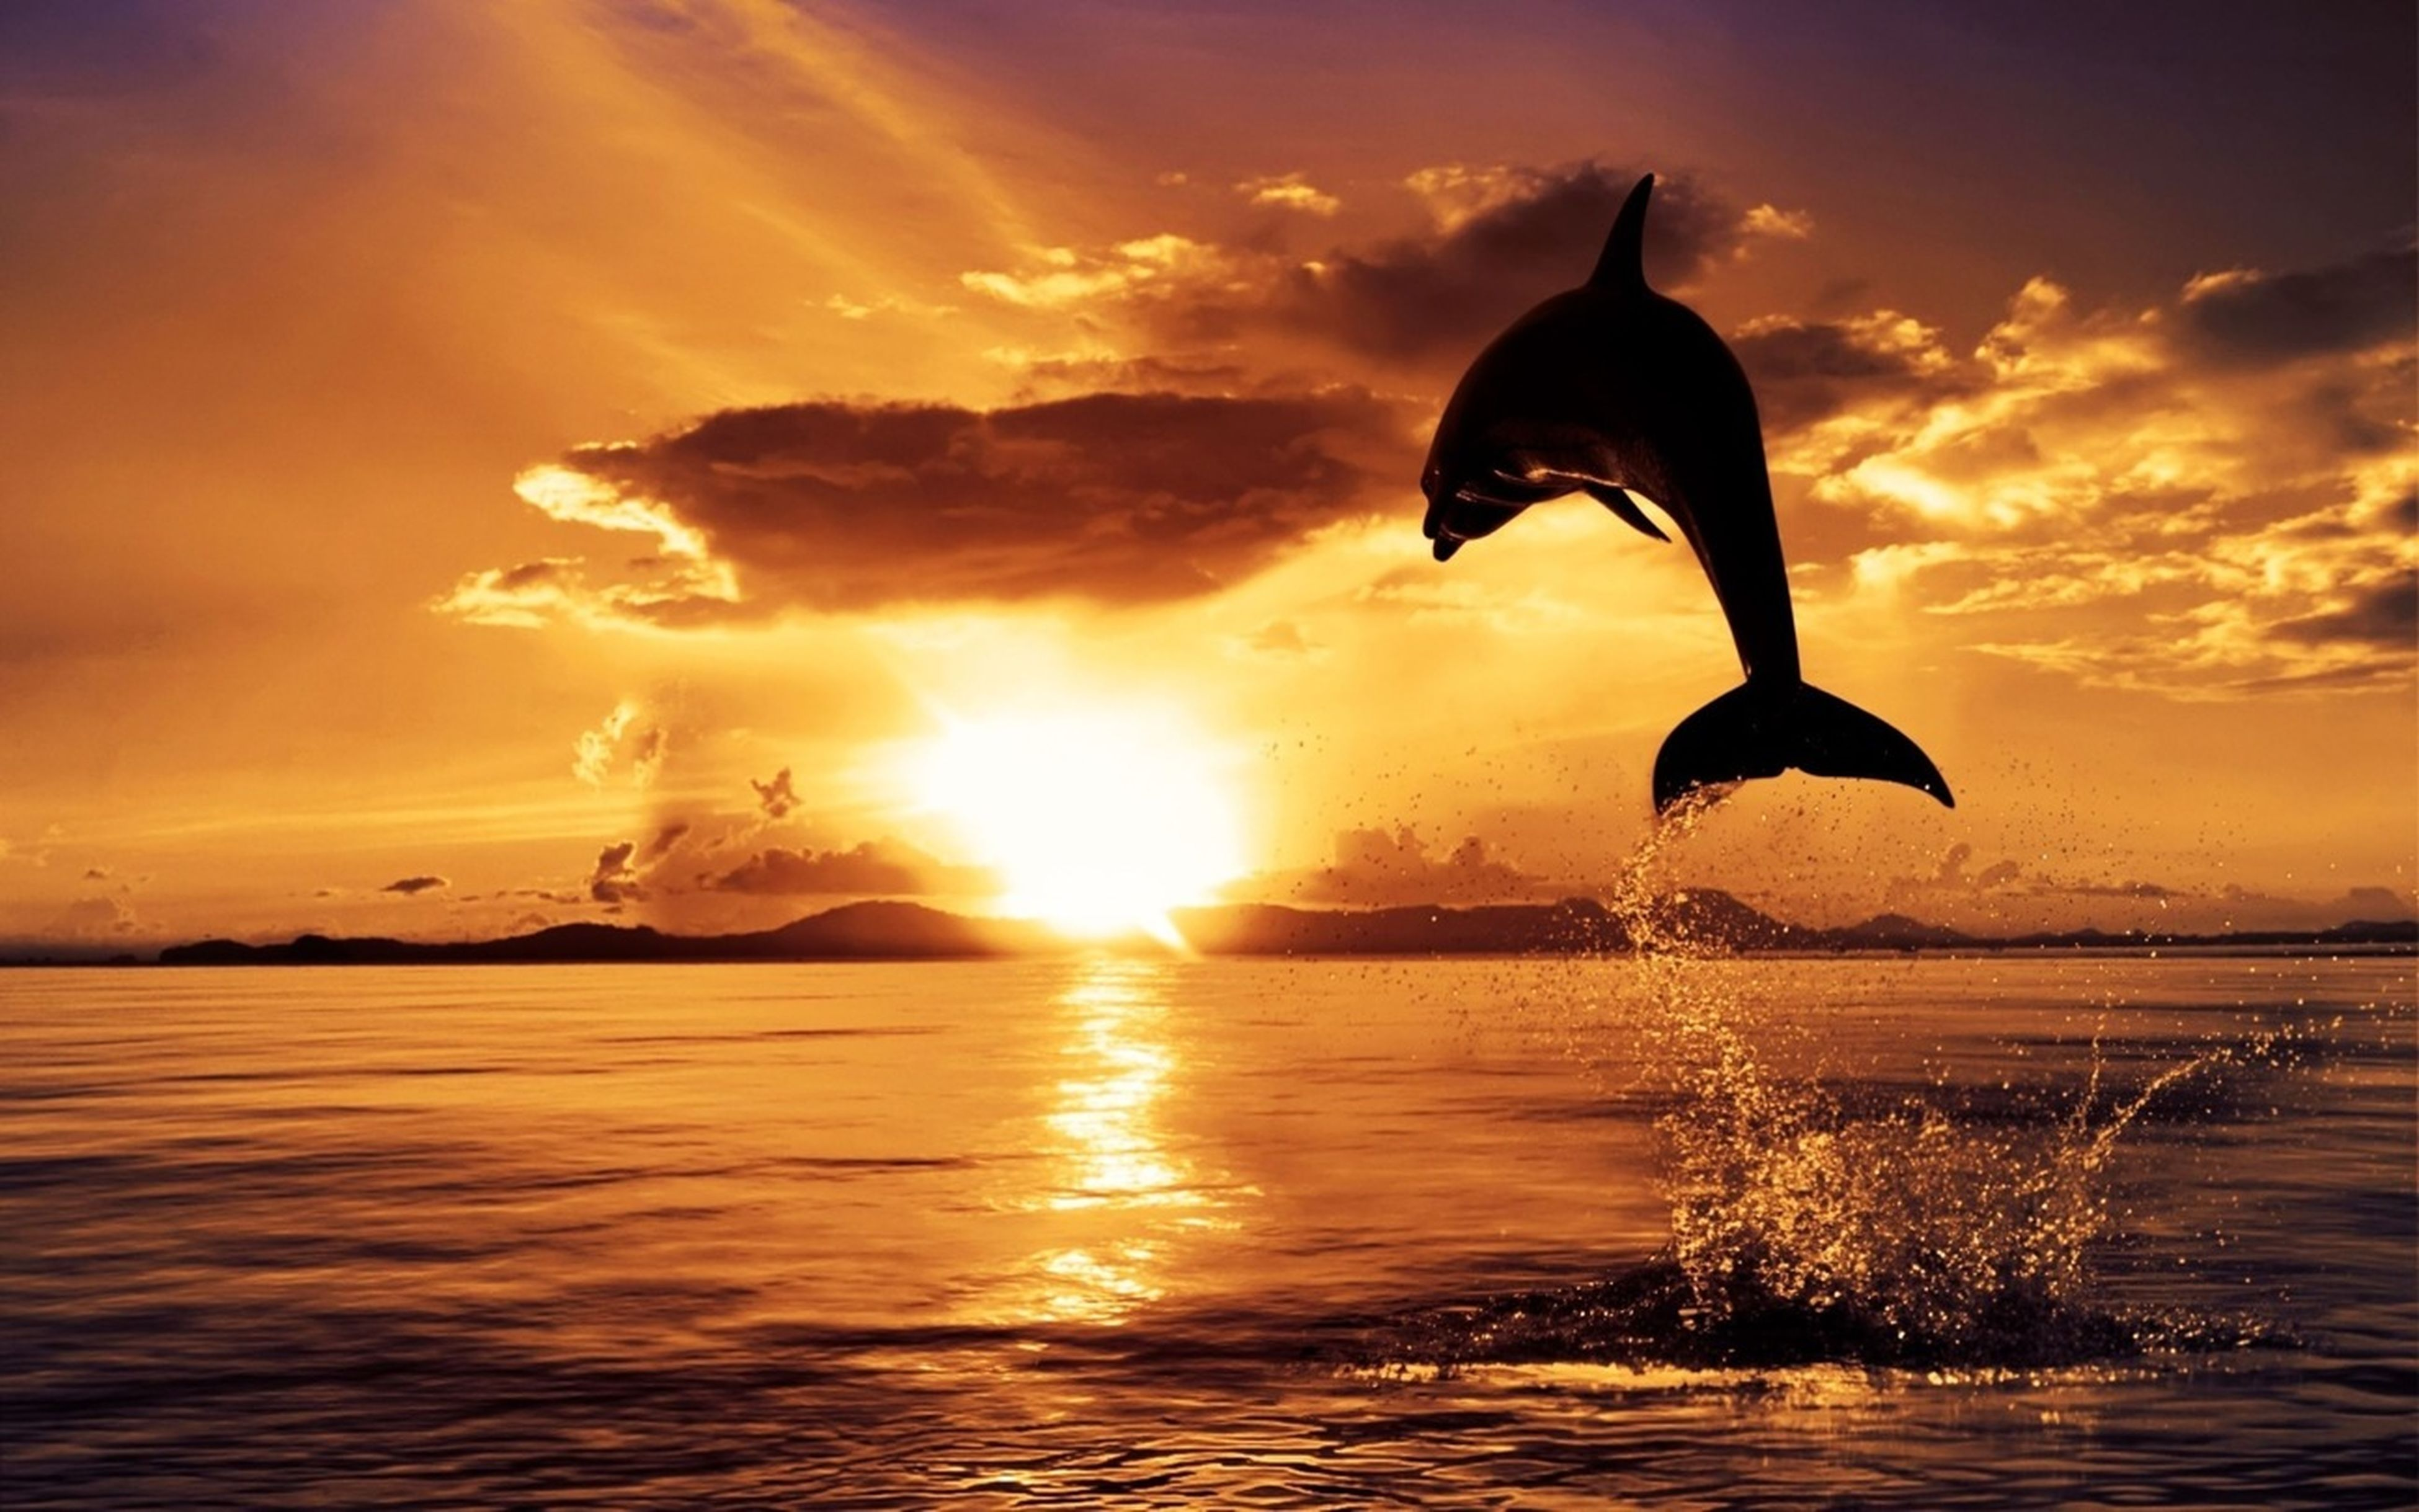 sunset, bird, water, animal themes, one animal, silhouette, animals in the wild, waterfront, wildlife, beauty in nature, reflection, sky, sun, orange color, rippled, nature, scenics, flying, tranquil scene, tranquility